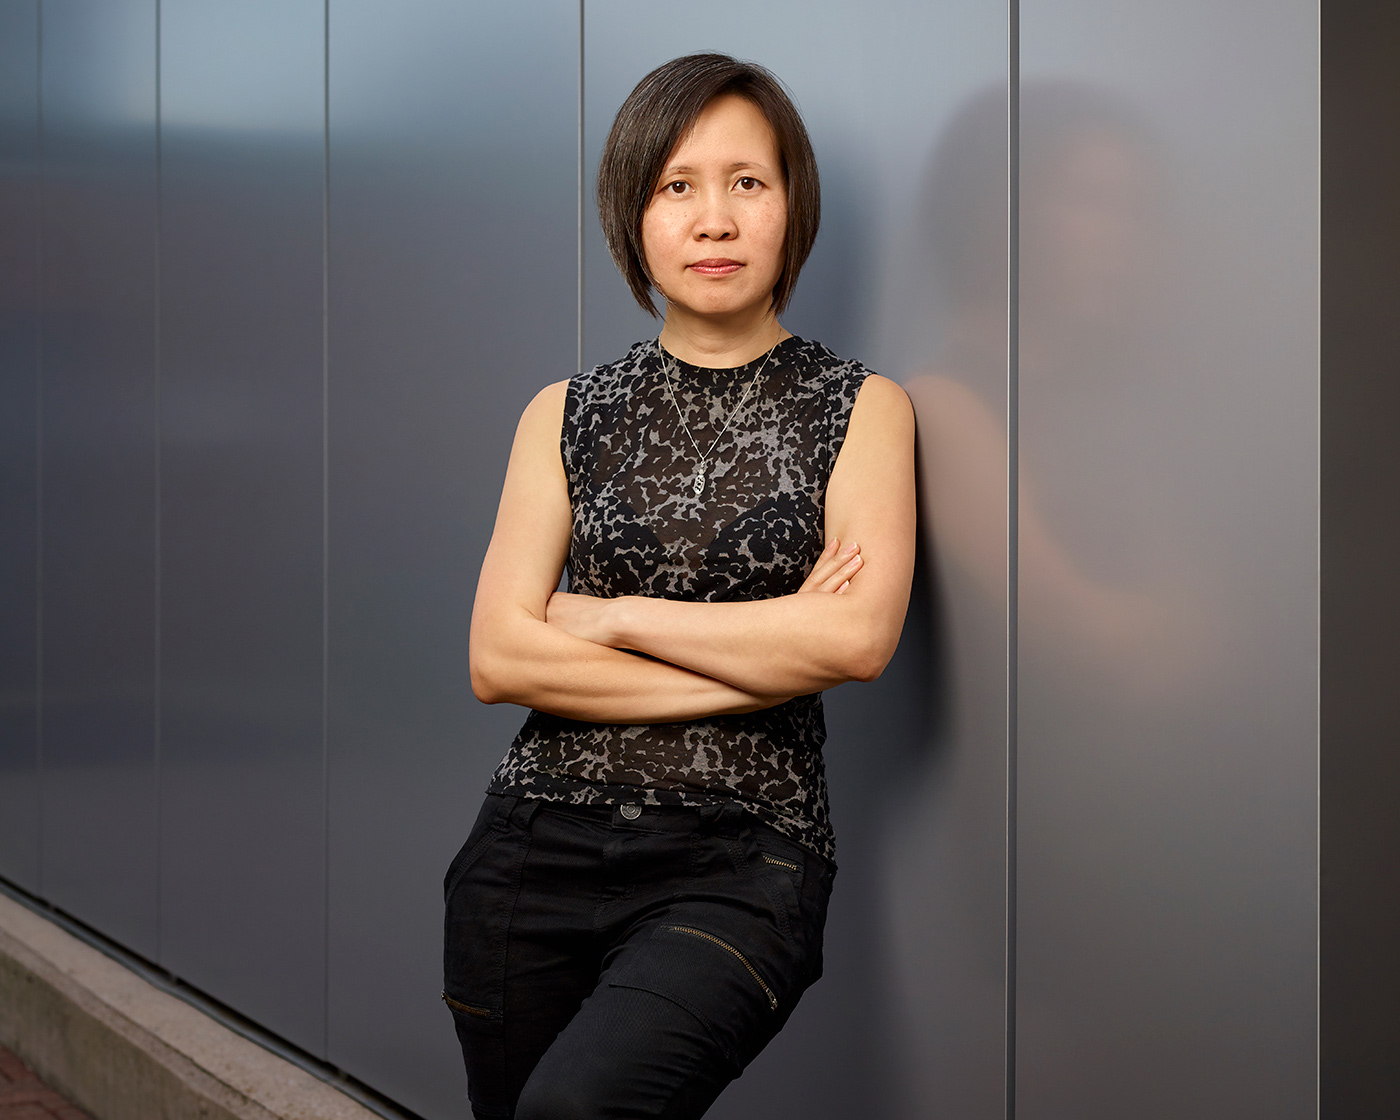 Image of cinematographer Iris Ng leaning against a wall with her arms folded.